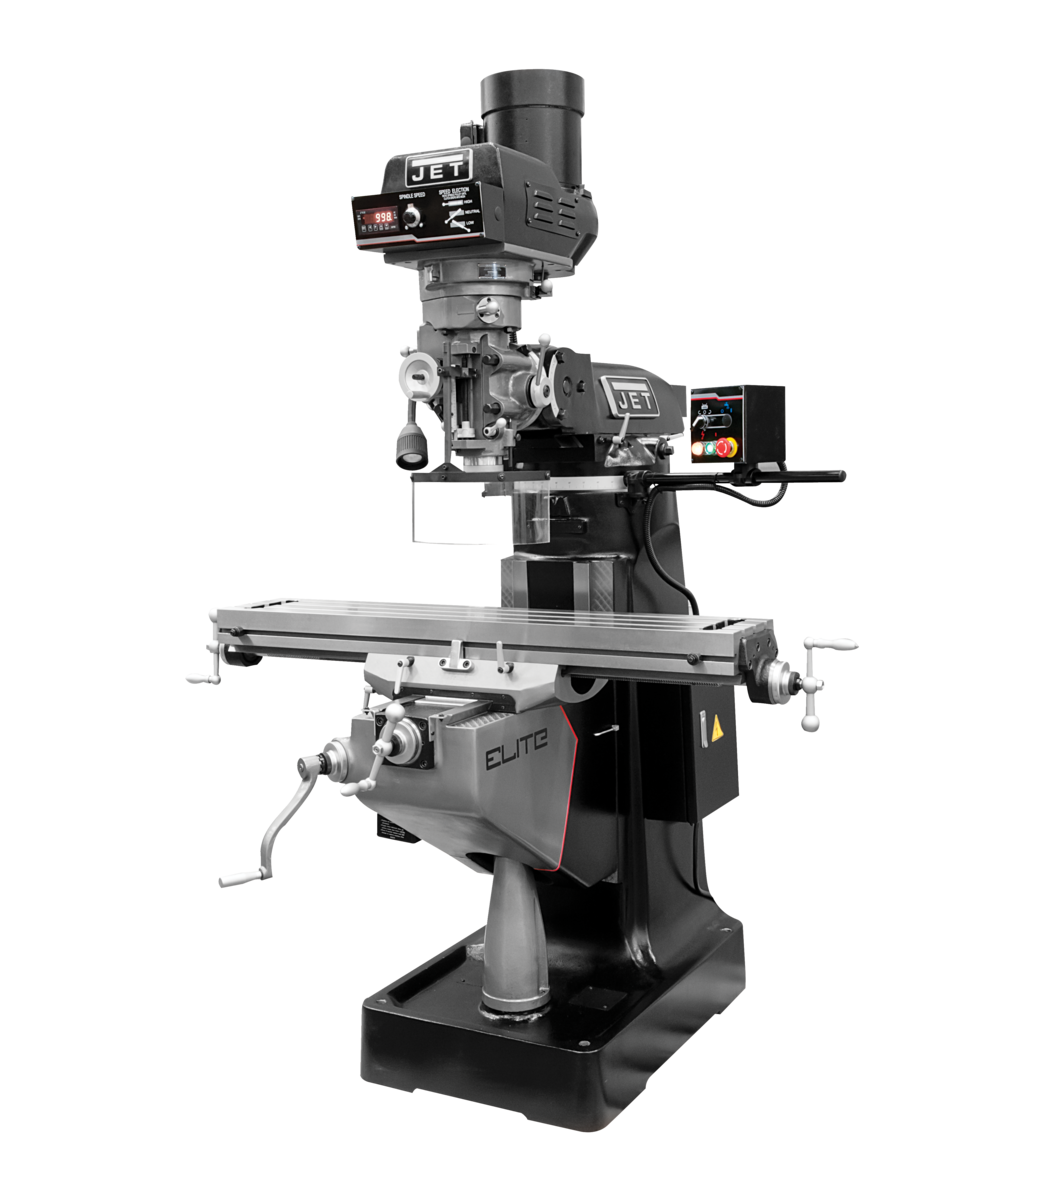 EVS-949 Mill with 2-Axis ACU-RITE 303 DRO and Servo X, Y-Axis Powerfeeds